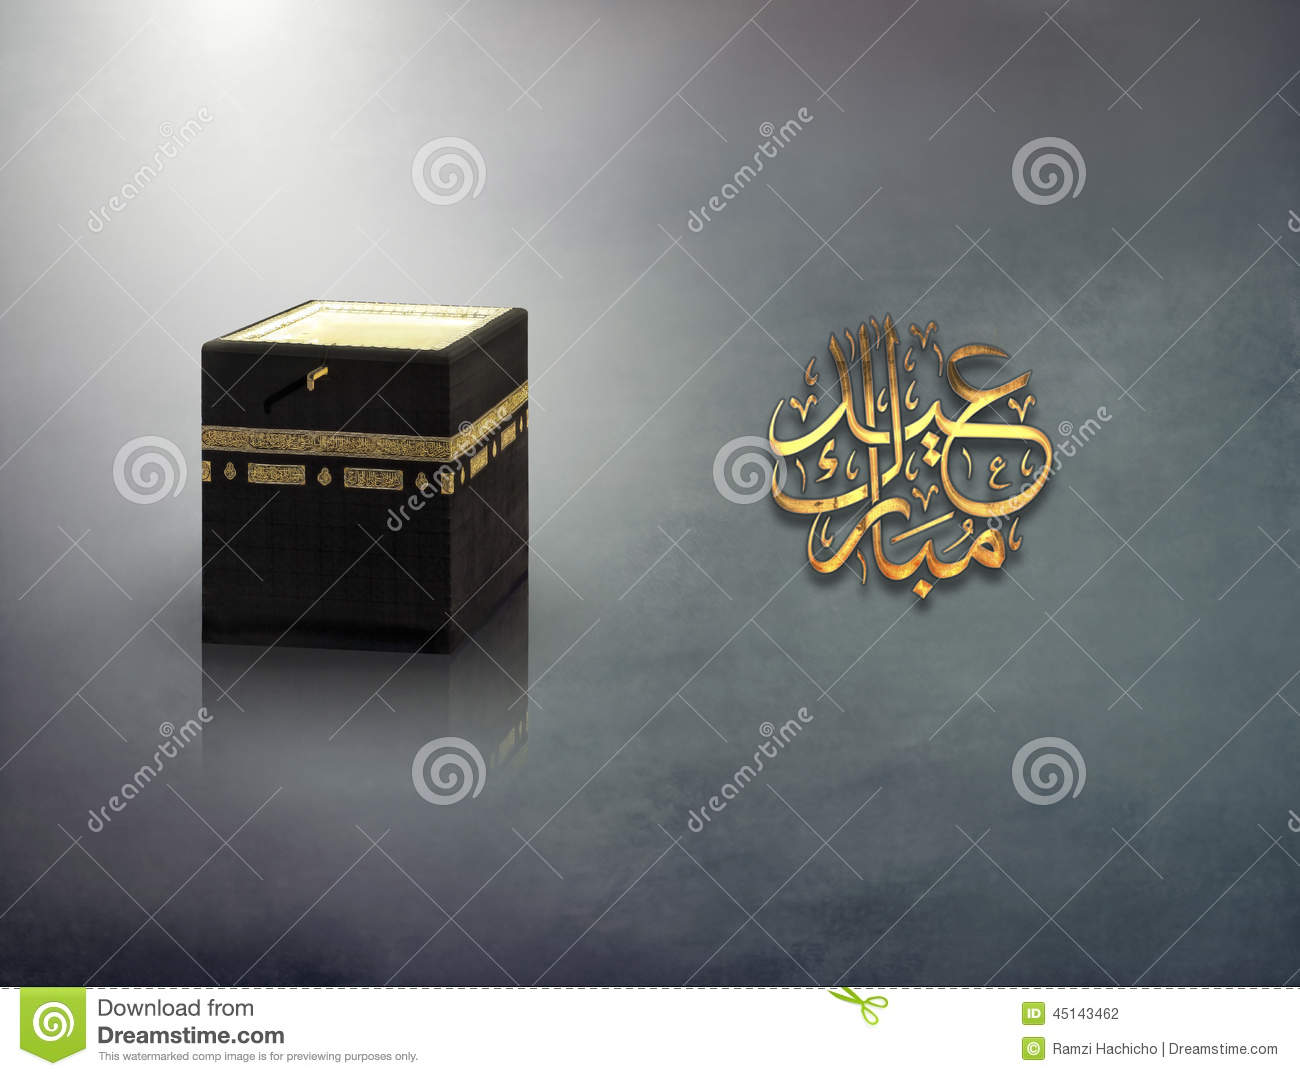 Islamic Concept Of Adha Greeting And Kaaba Holy Month For Hajj In